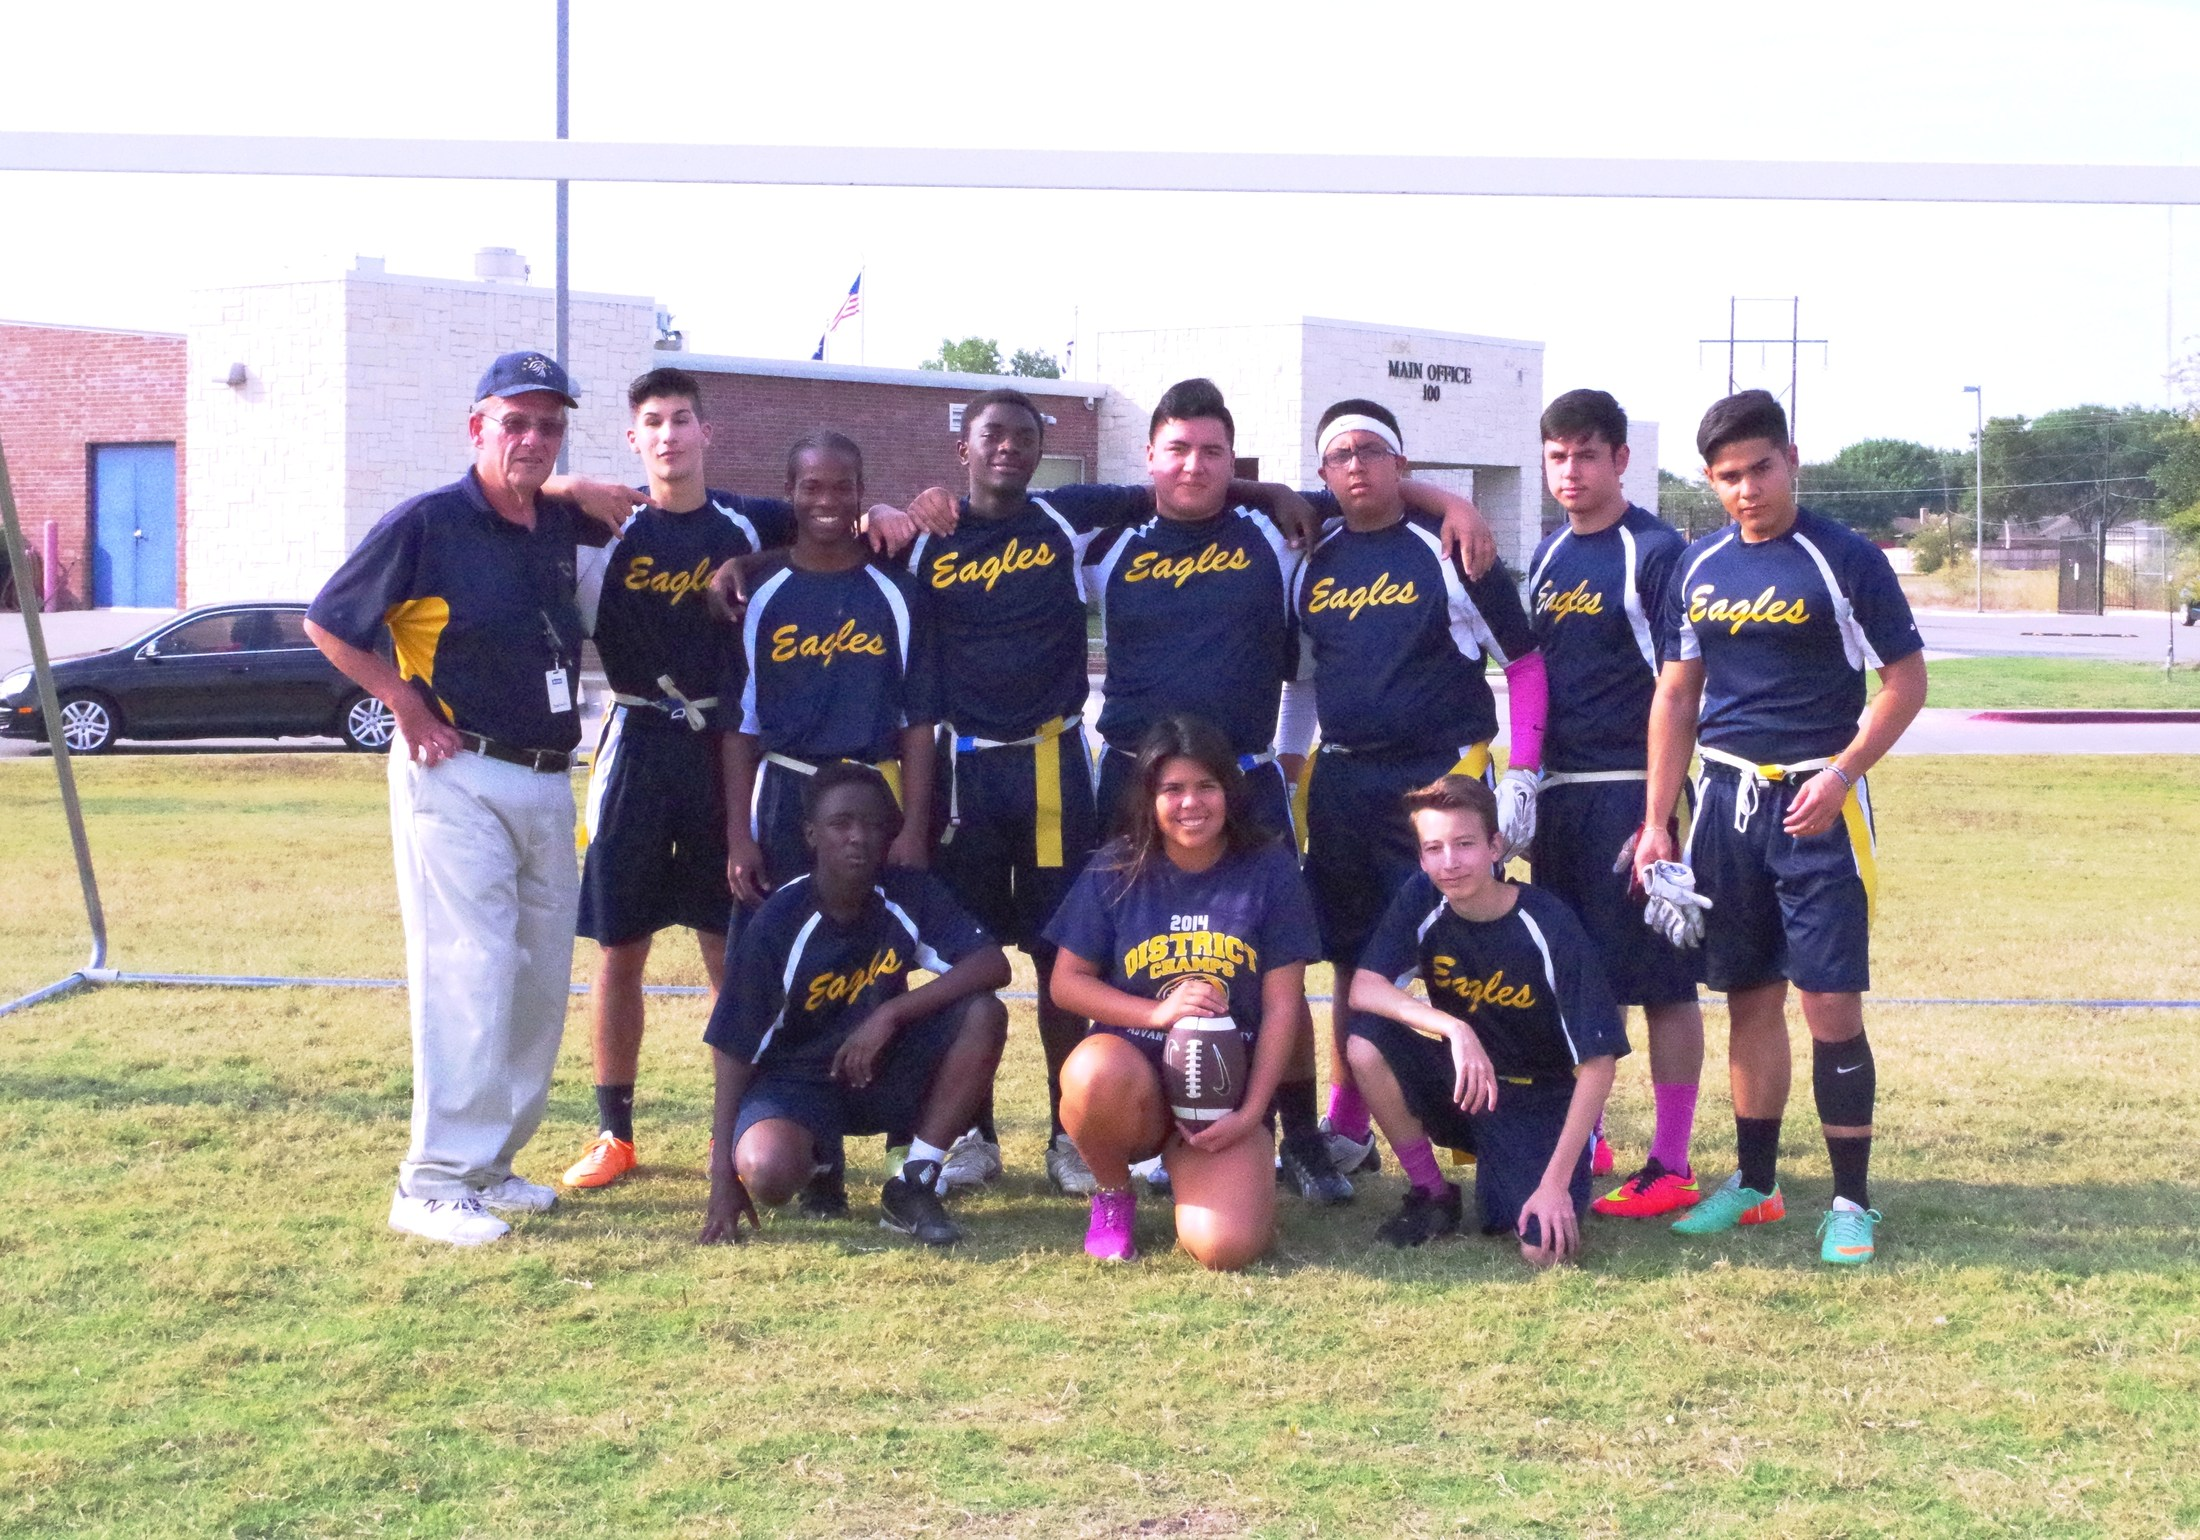 Eagles flag football team